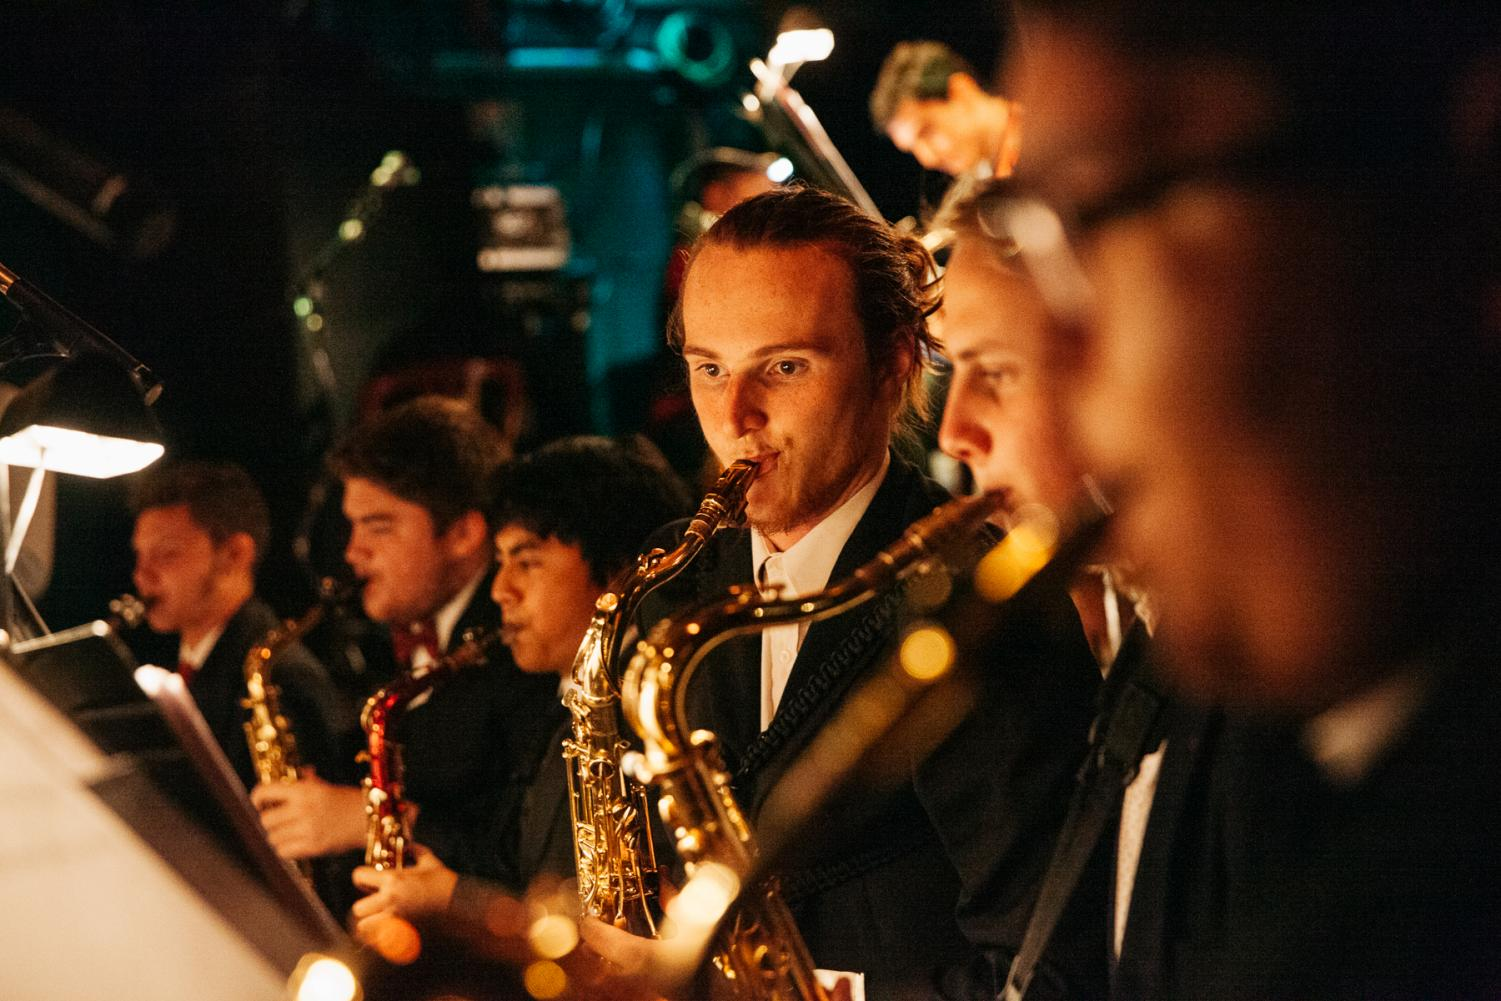 SBCC Good Times Big Band Saxophonists play for the Monday night jazz performance at sOhO Restaurant and Music Club on Oct. 21, 2019, in Downtown Santa Barbara, Calif. Eli Naania (Middle) played several saxophone solos during the show.